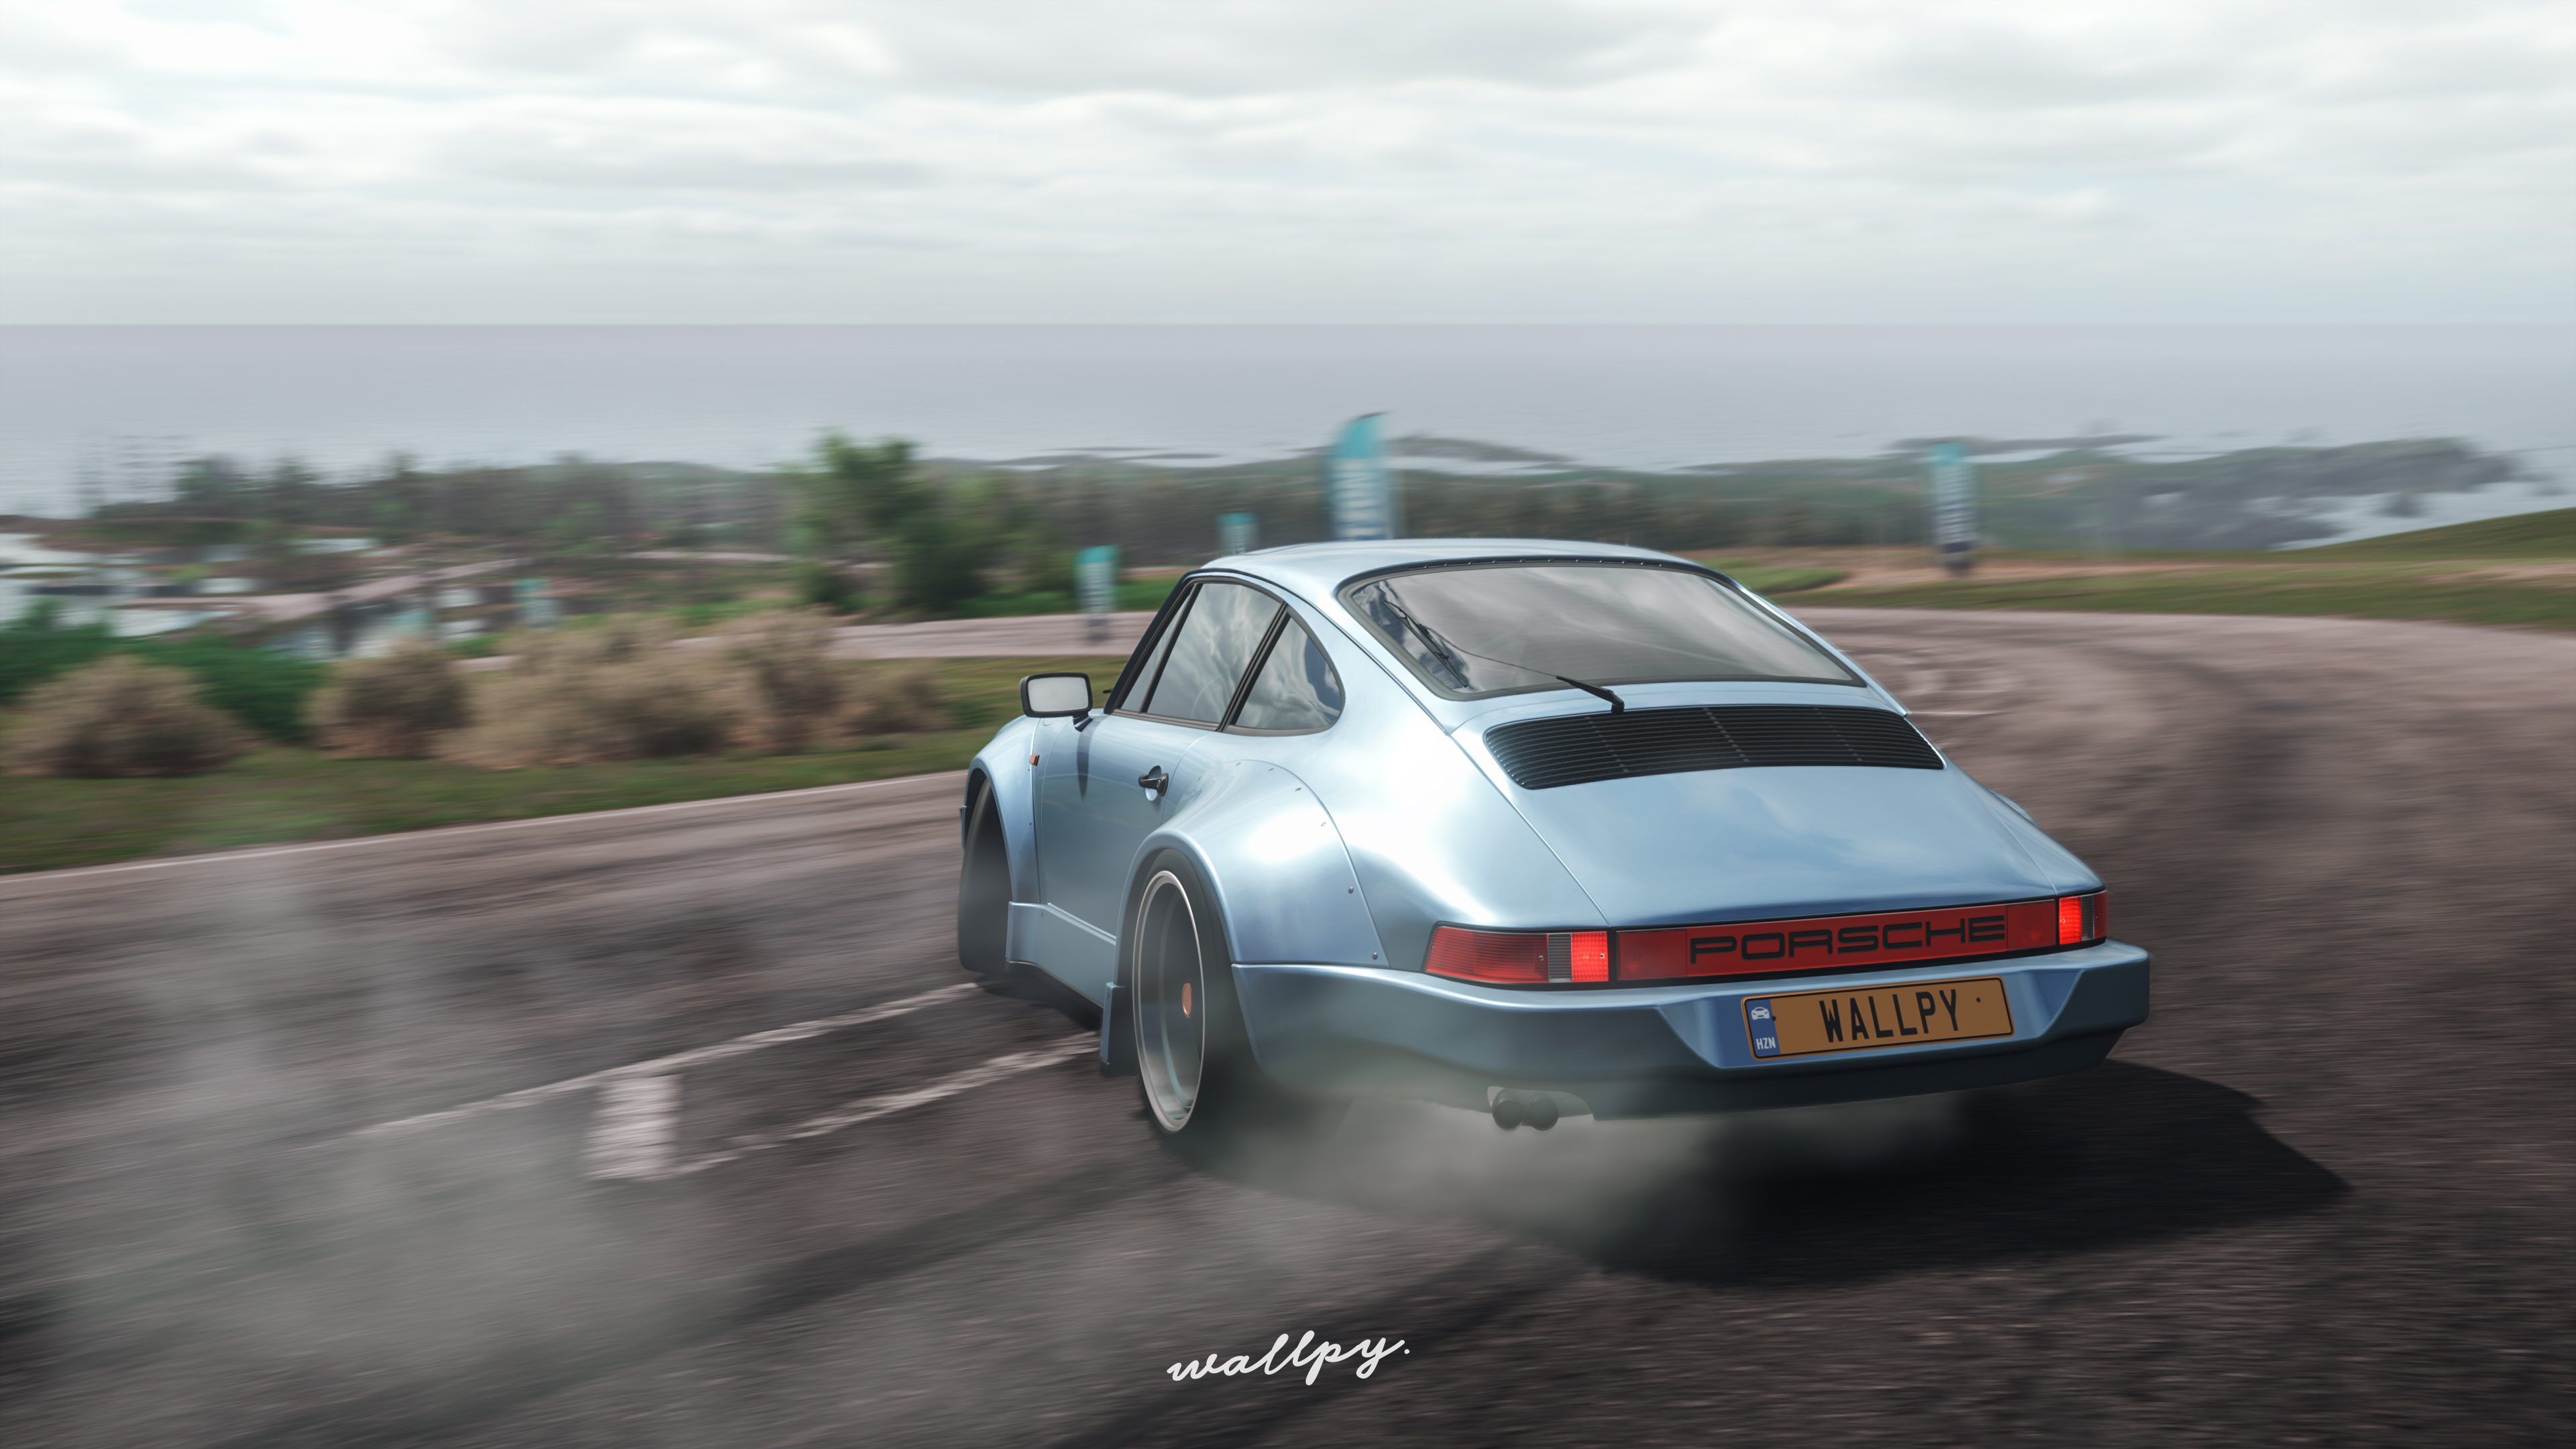 Porsche drift forza horizon 4 hd games 4k wallpapers images backgrounds photos and pictures - Forza logo wallpaper ...